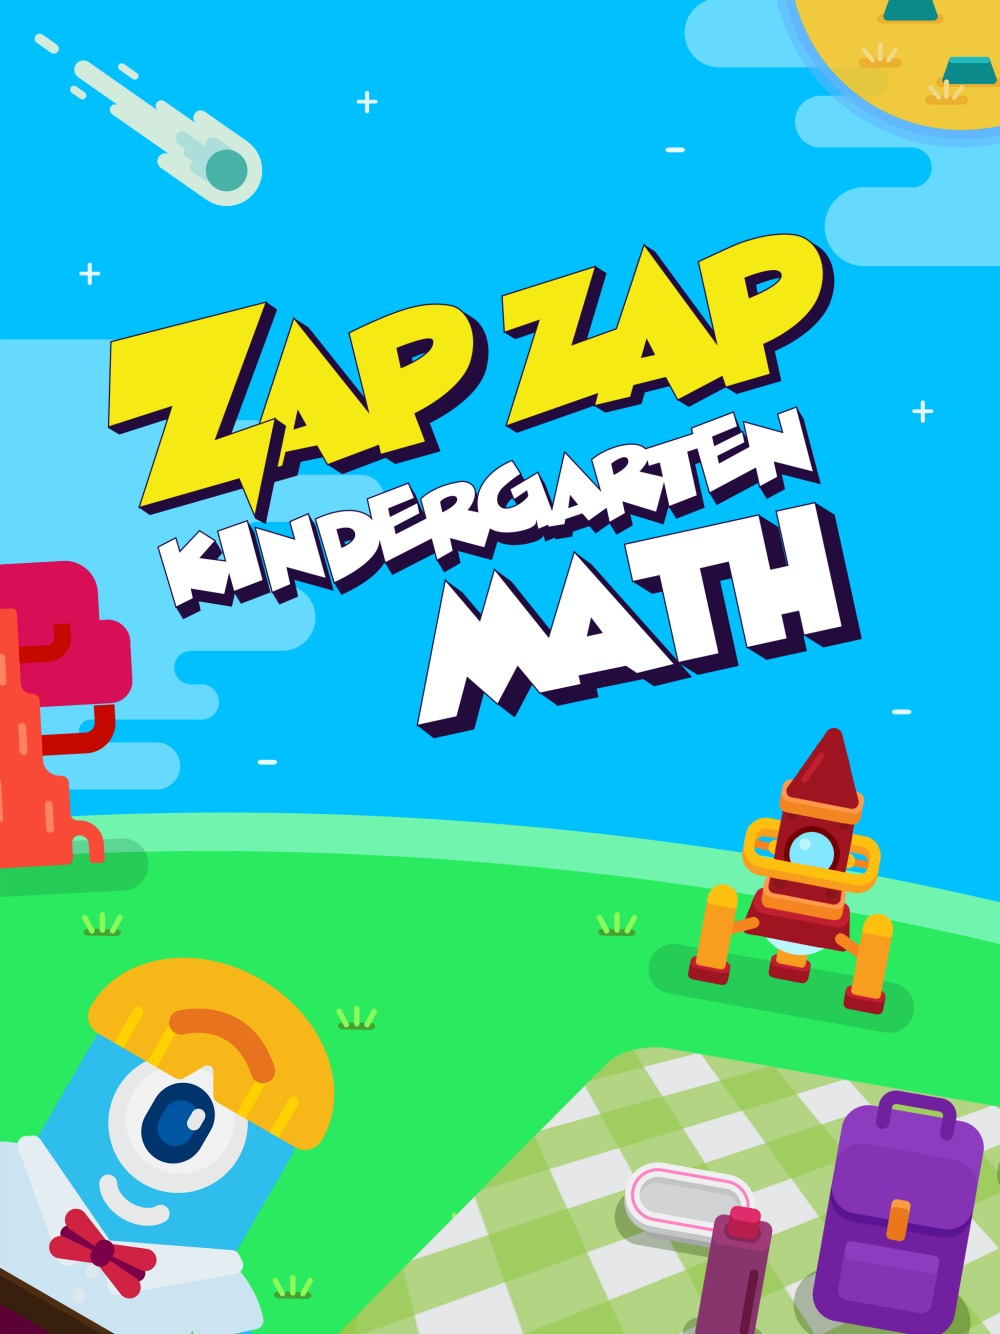 If you have a child ages 3-6, I've got a great new app for learning math! Here are 7 reasons kids should play Zap Zap Kindergarten Math App.